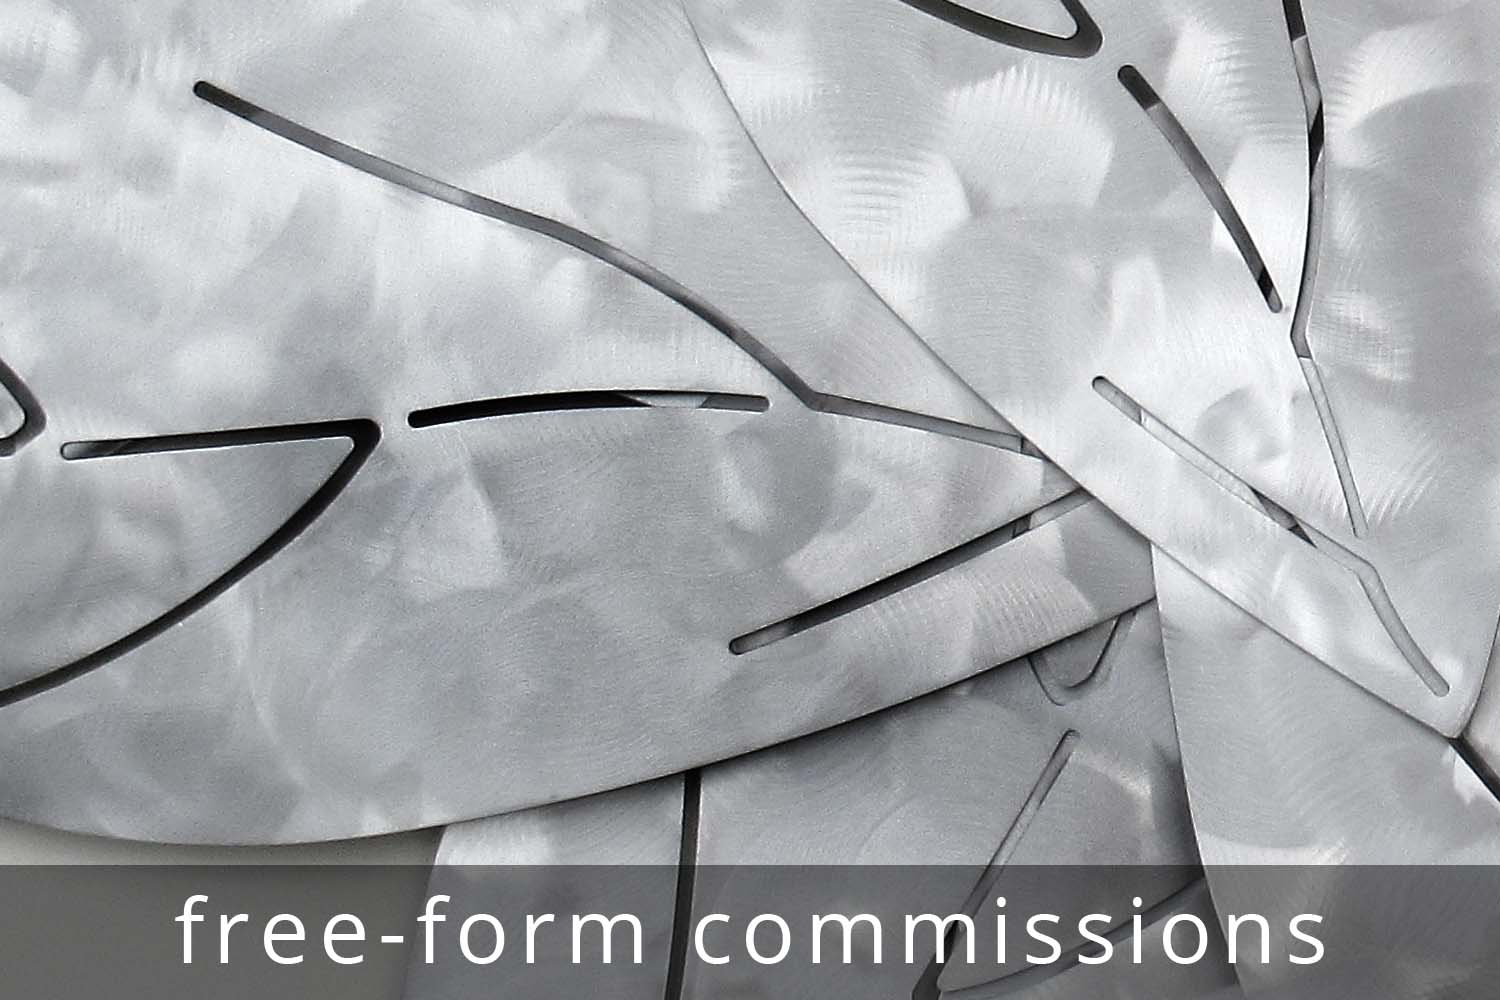 free-form metal commissions